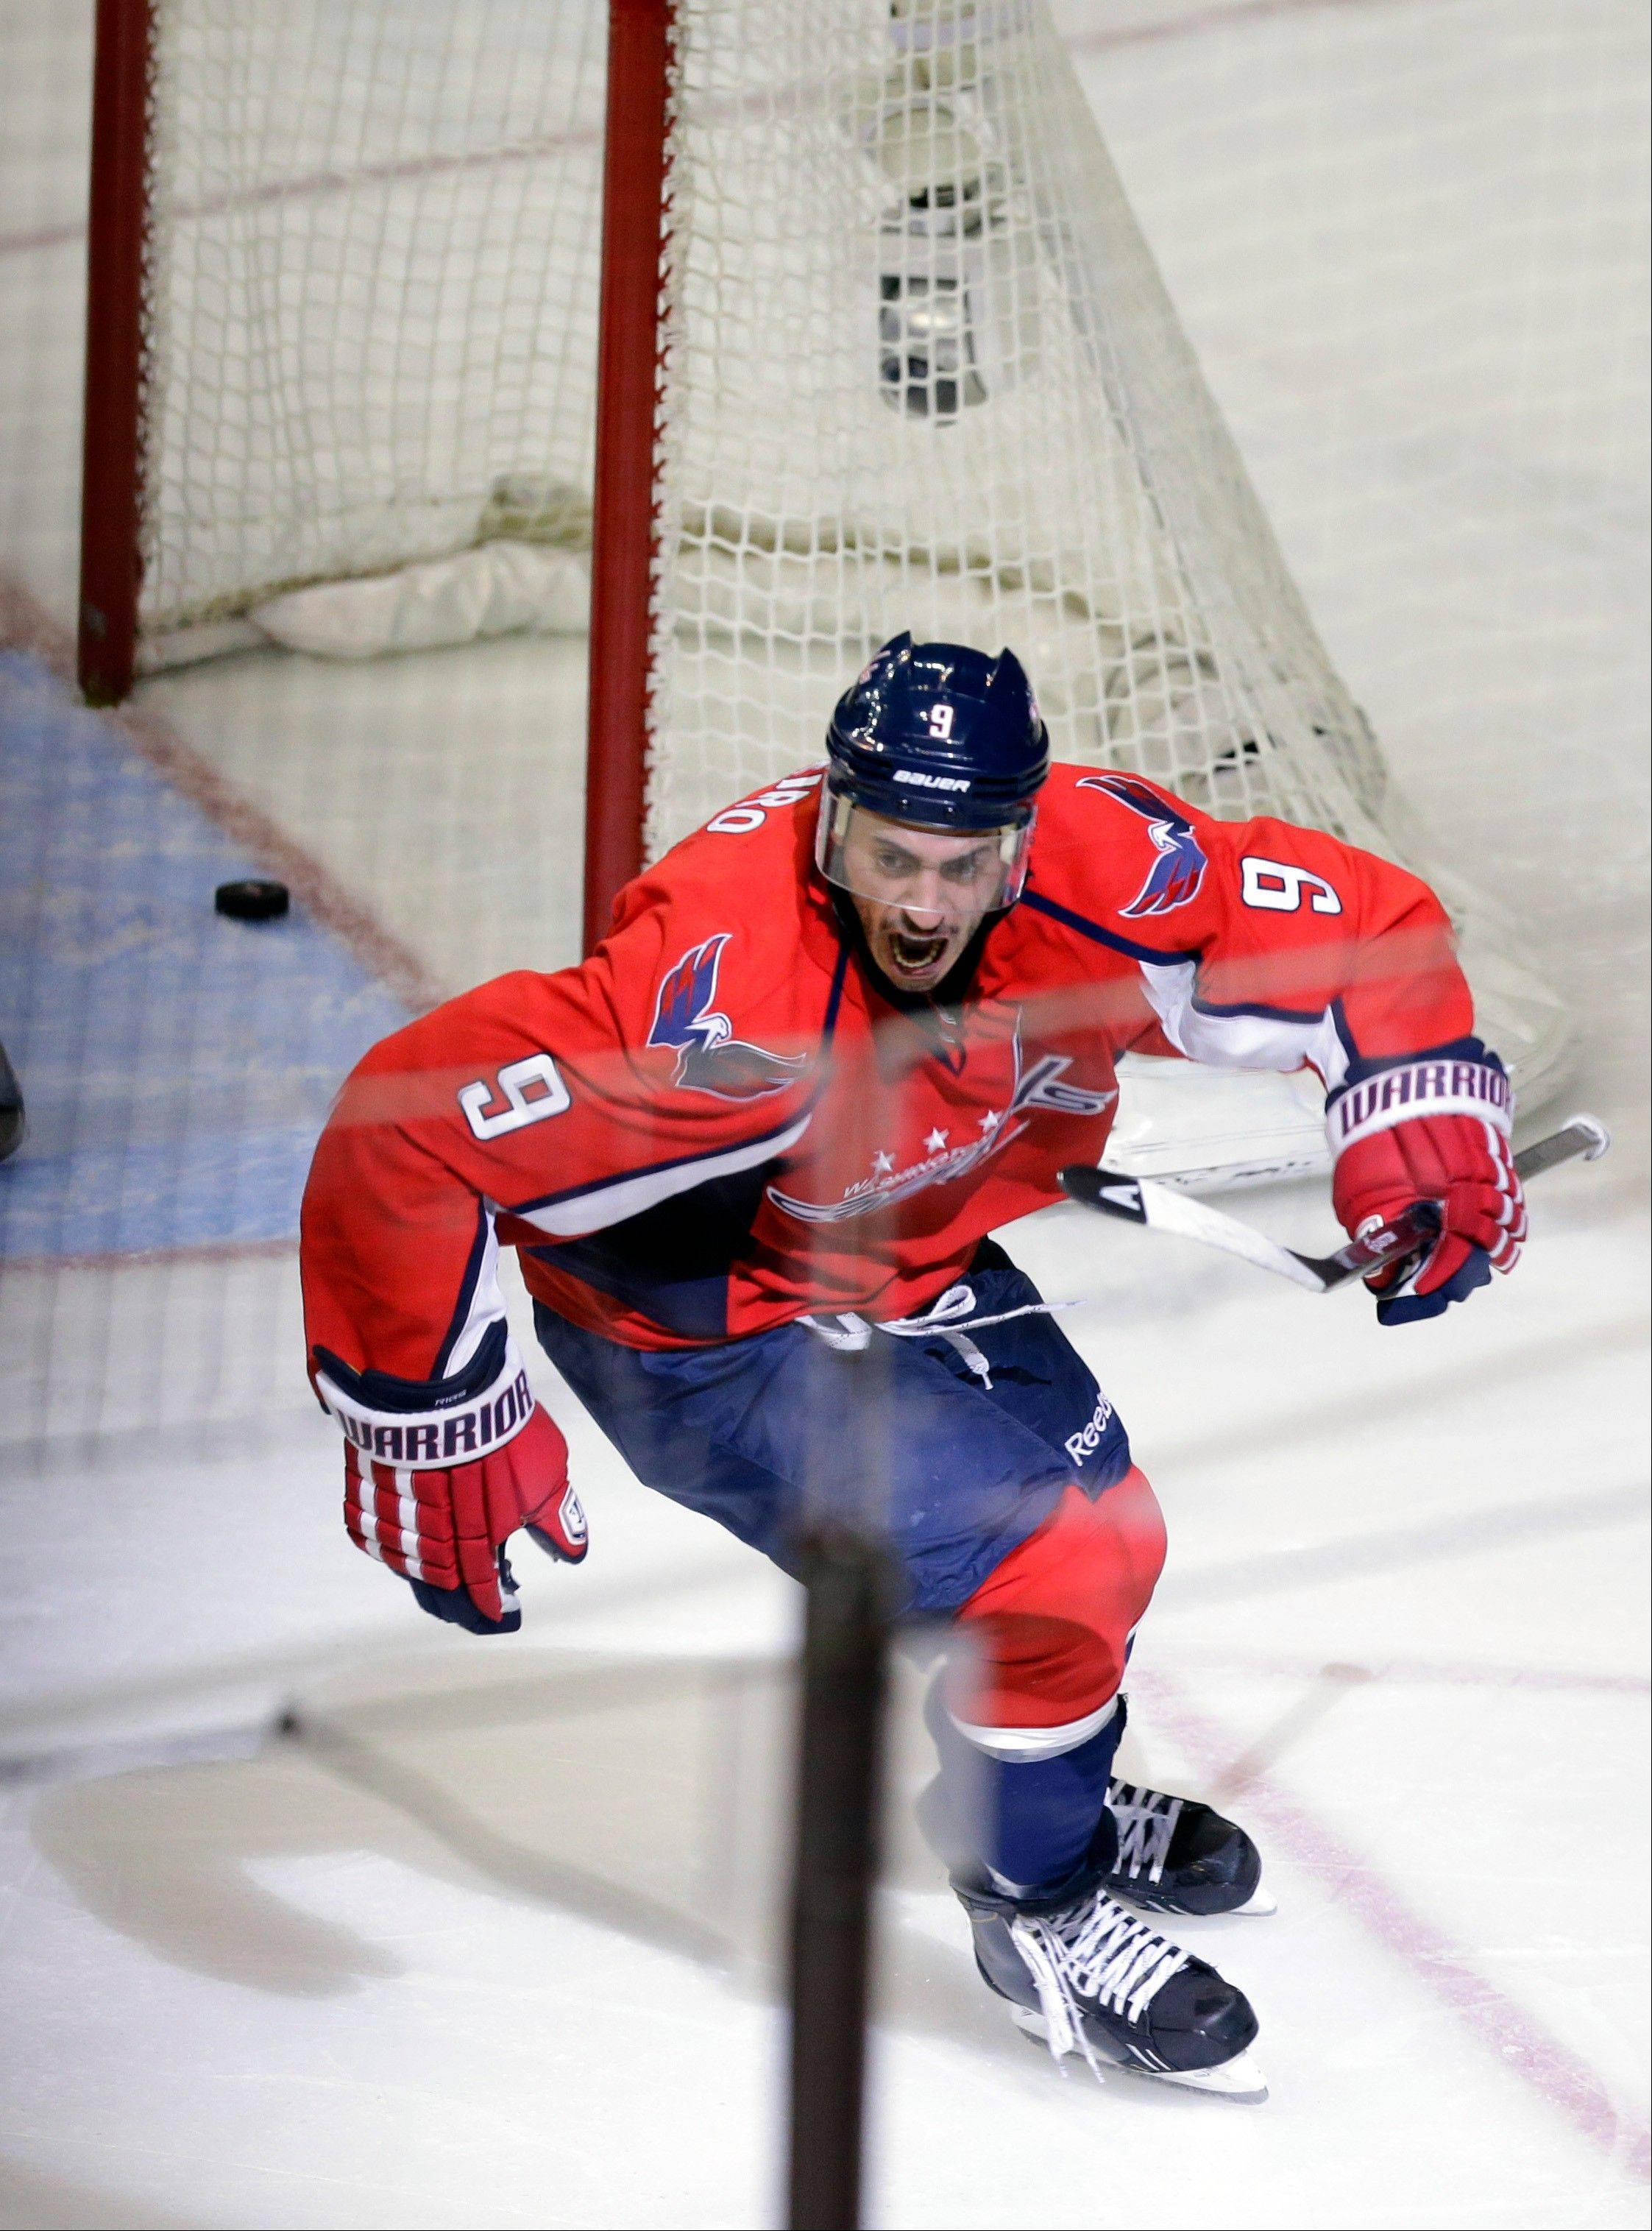 The Washington Capitals center Mike Ribeiro celebrates his game-winning goal in overtime of Game 5 first-round NHL Stanley Cup playoff hockey series against the New York Rangers, Friday, May 10, 2013, in Washington. The Capitals won 2-1, in overtime.